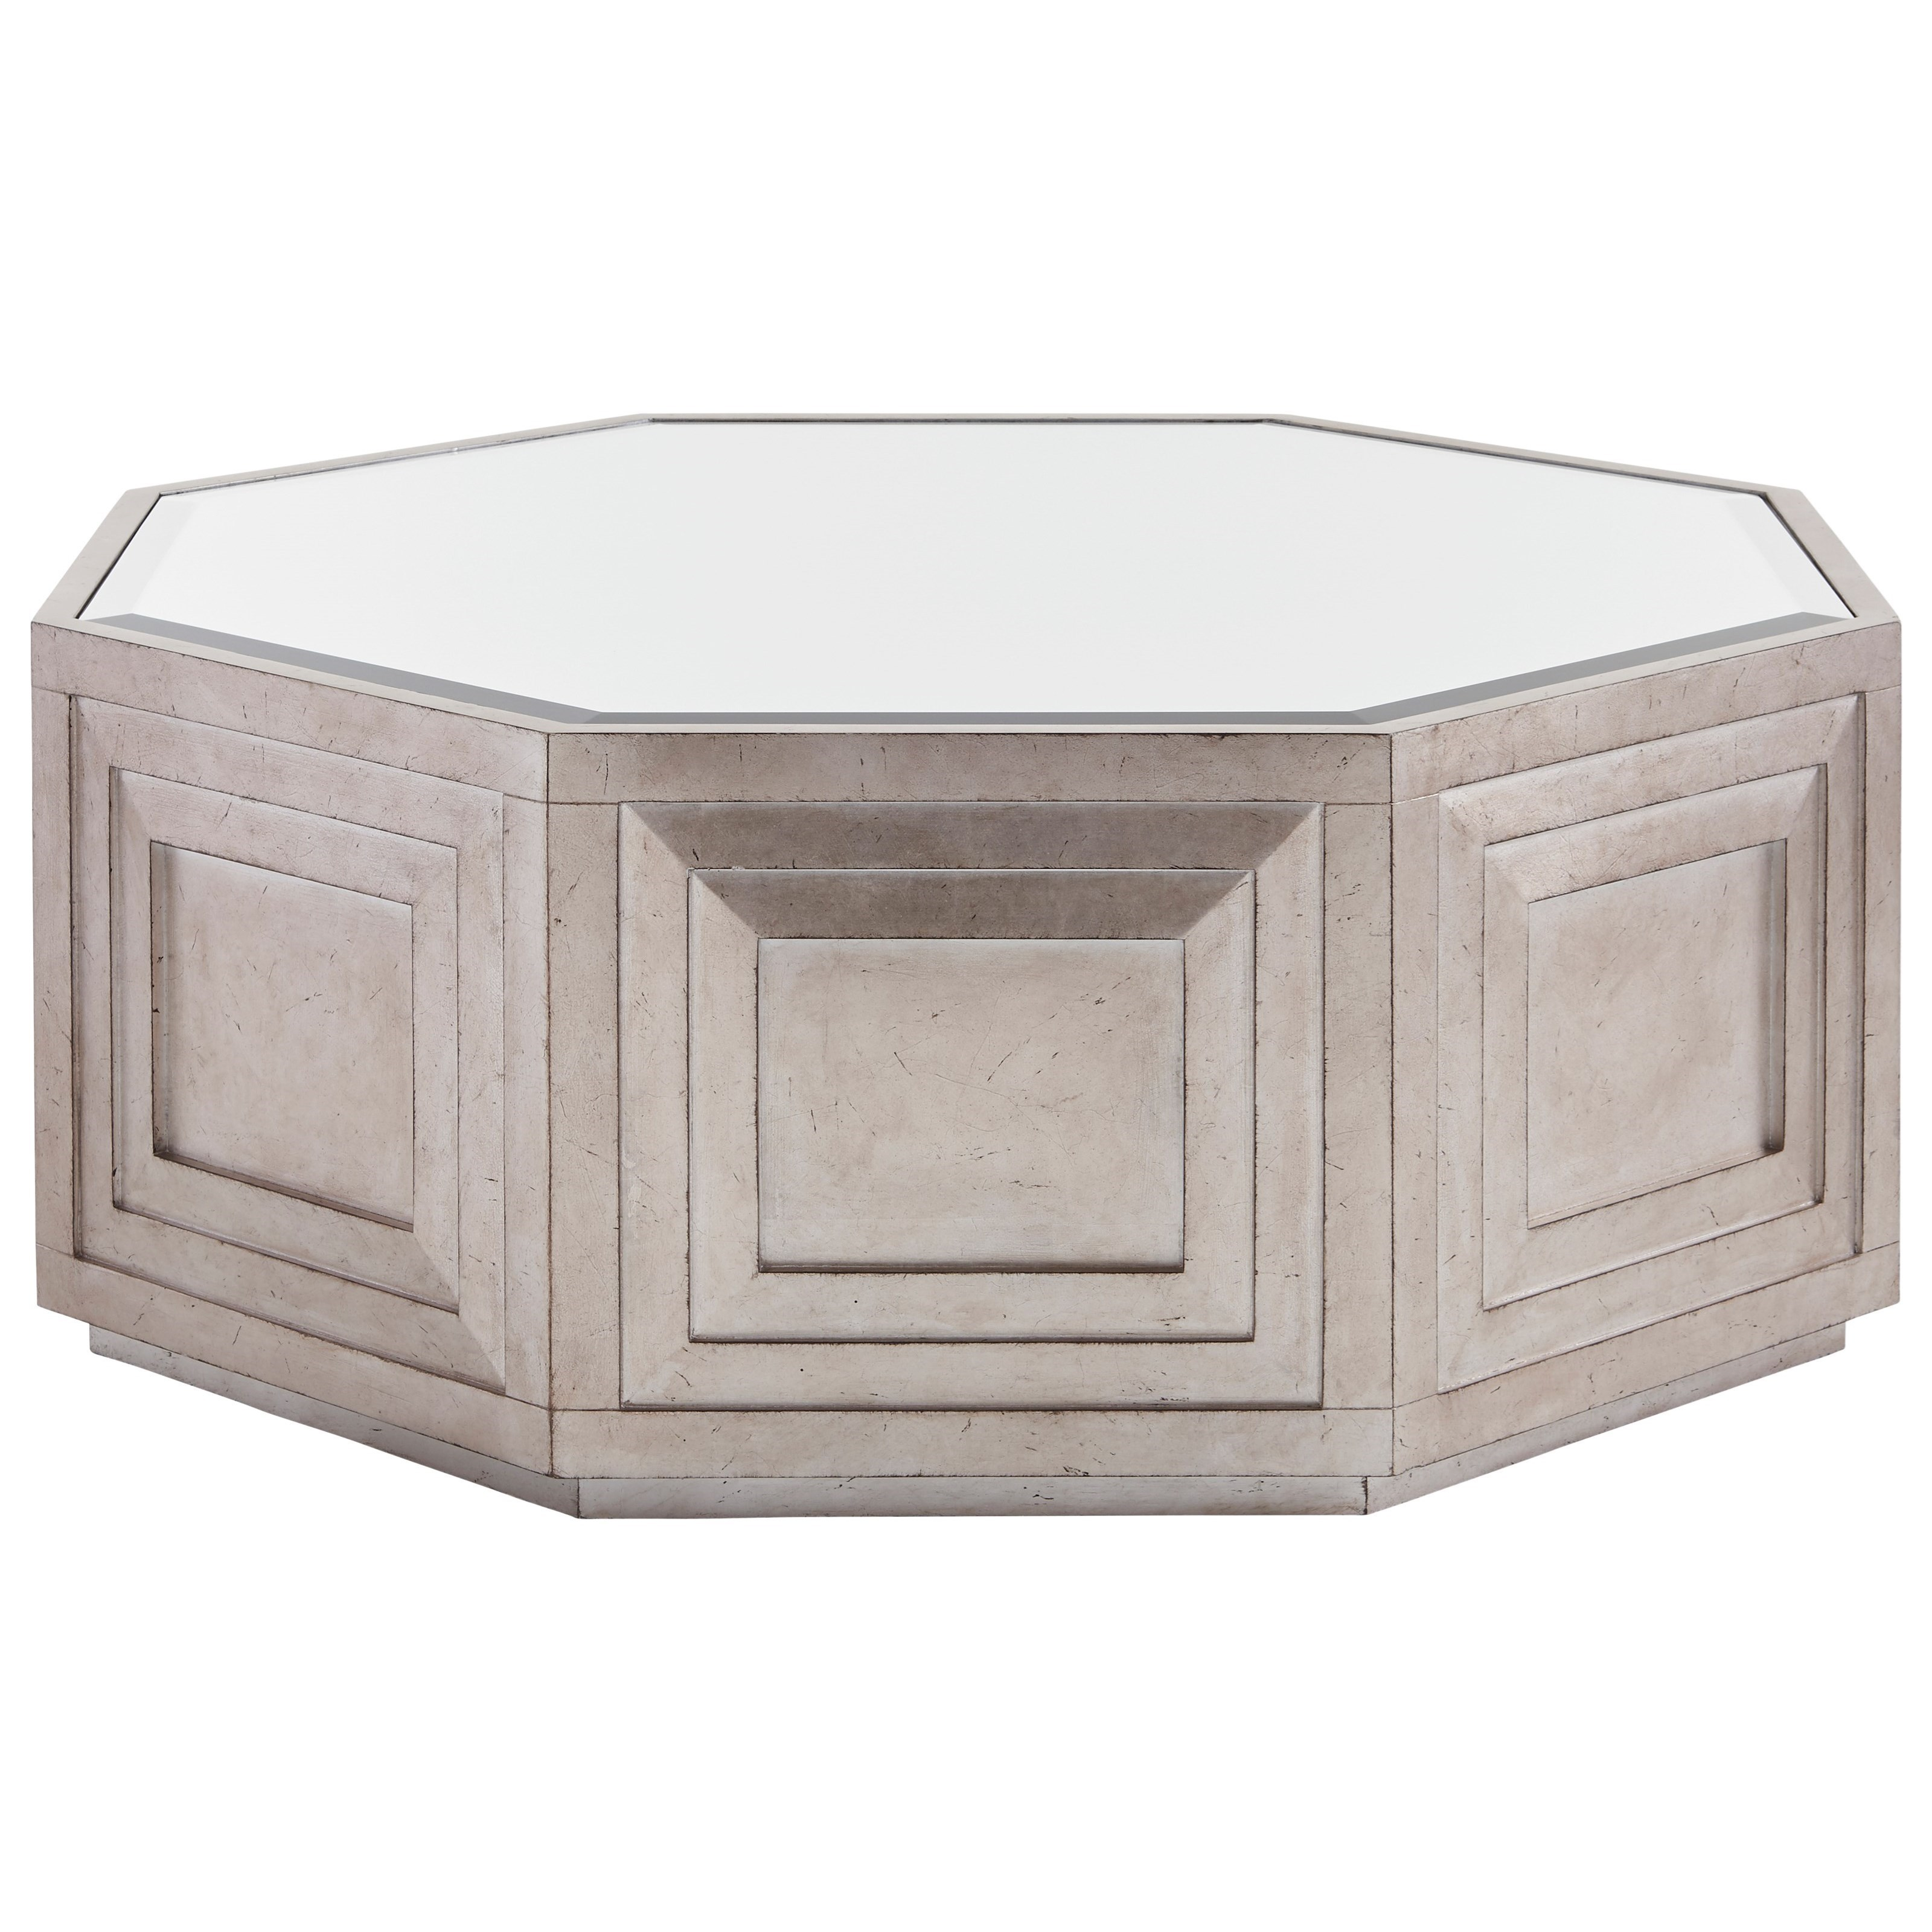 Ariana Rochelle Octagonal Cocktail Table by Lexington at Furniture Fair - North Carolina